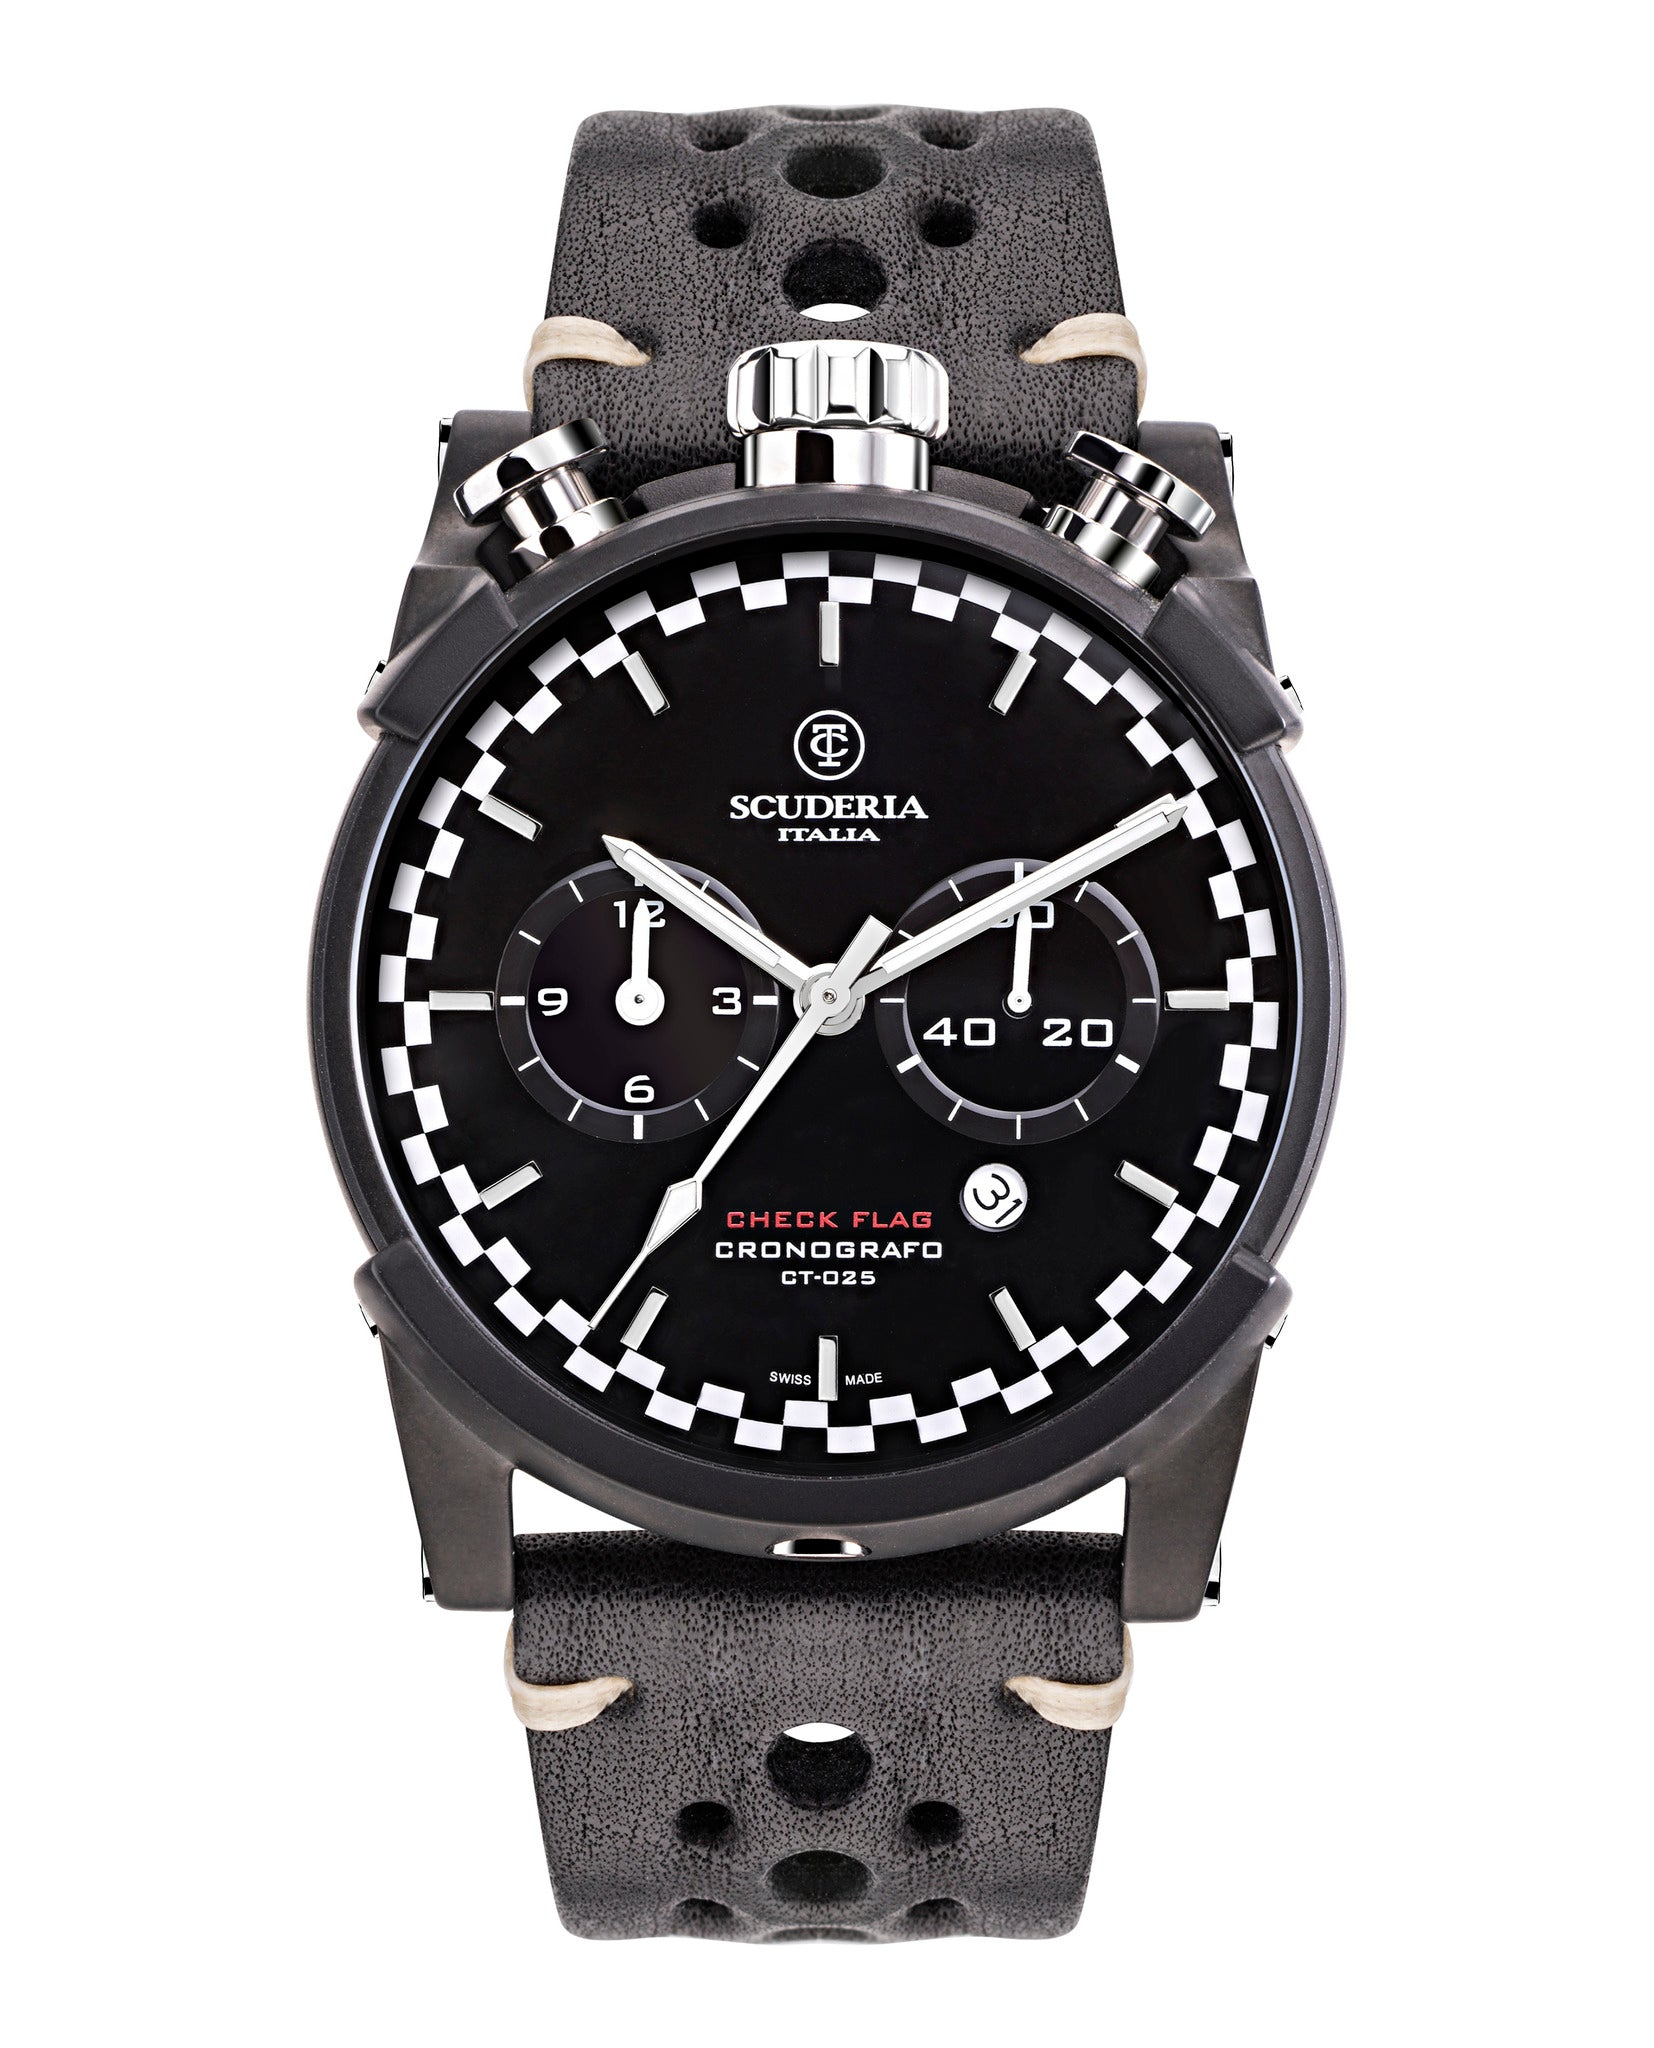 CT Scuderia Check Flag Watch